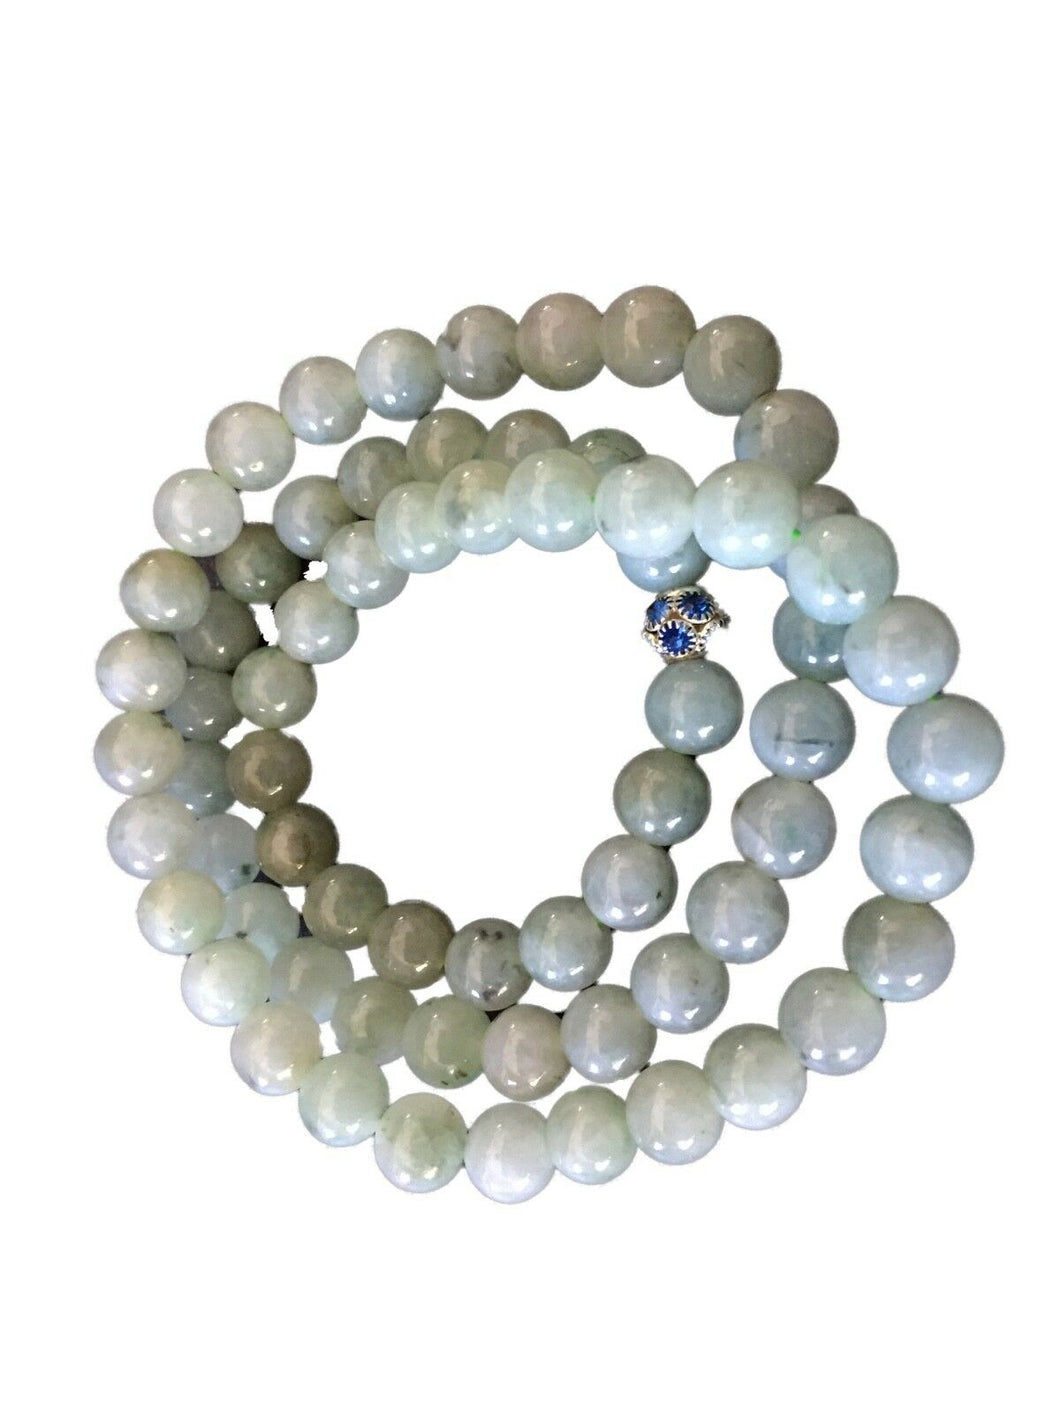 Superb  Jadeite Jade  Necklace 68 beads